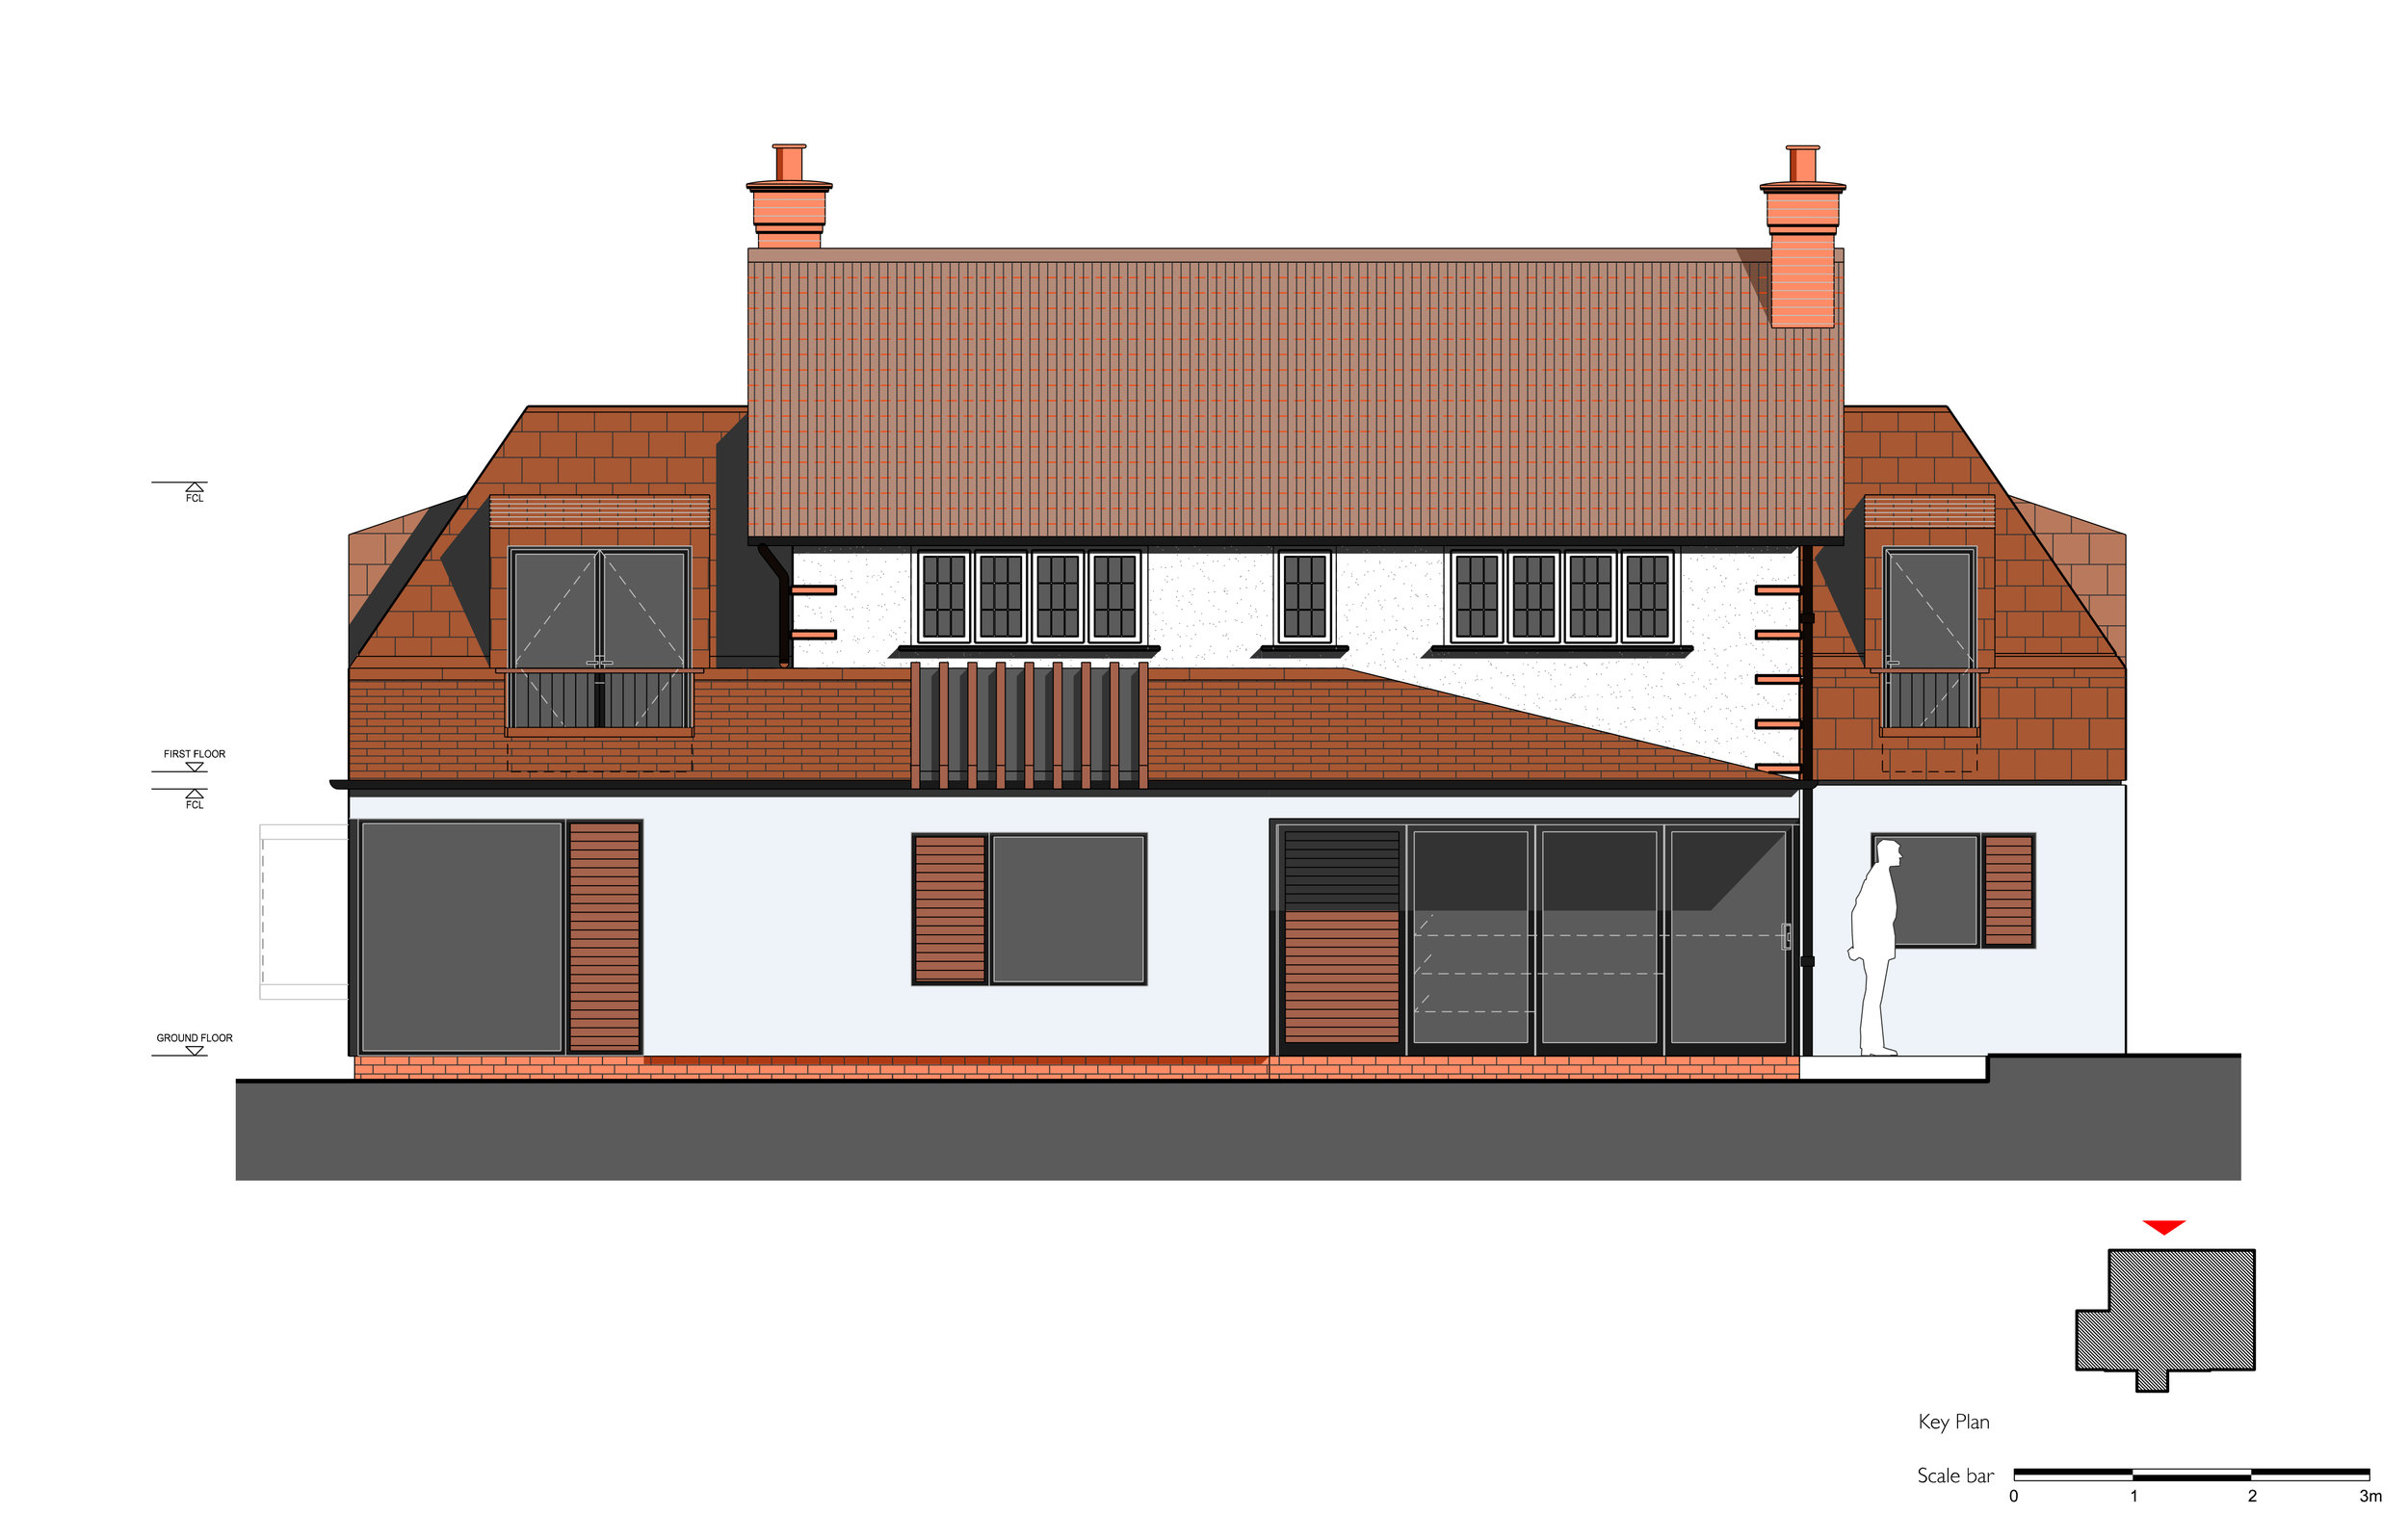 013_P_proposed south east rear elevation.jpg